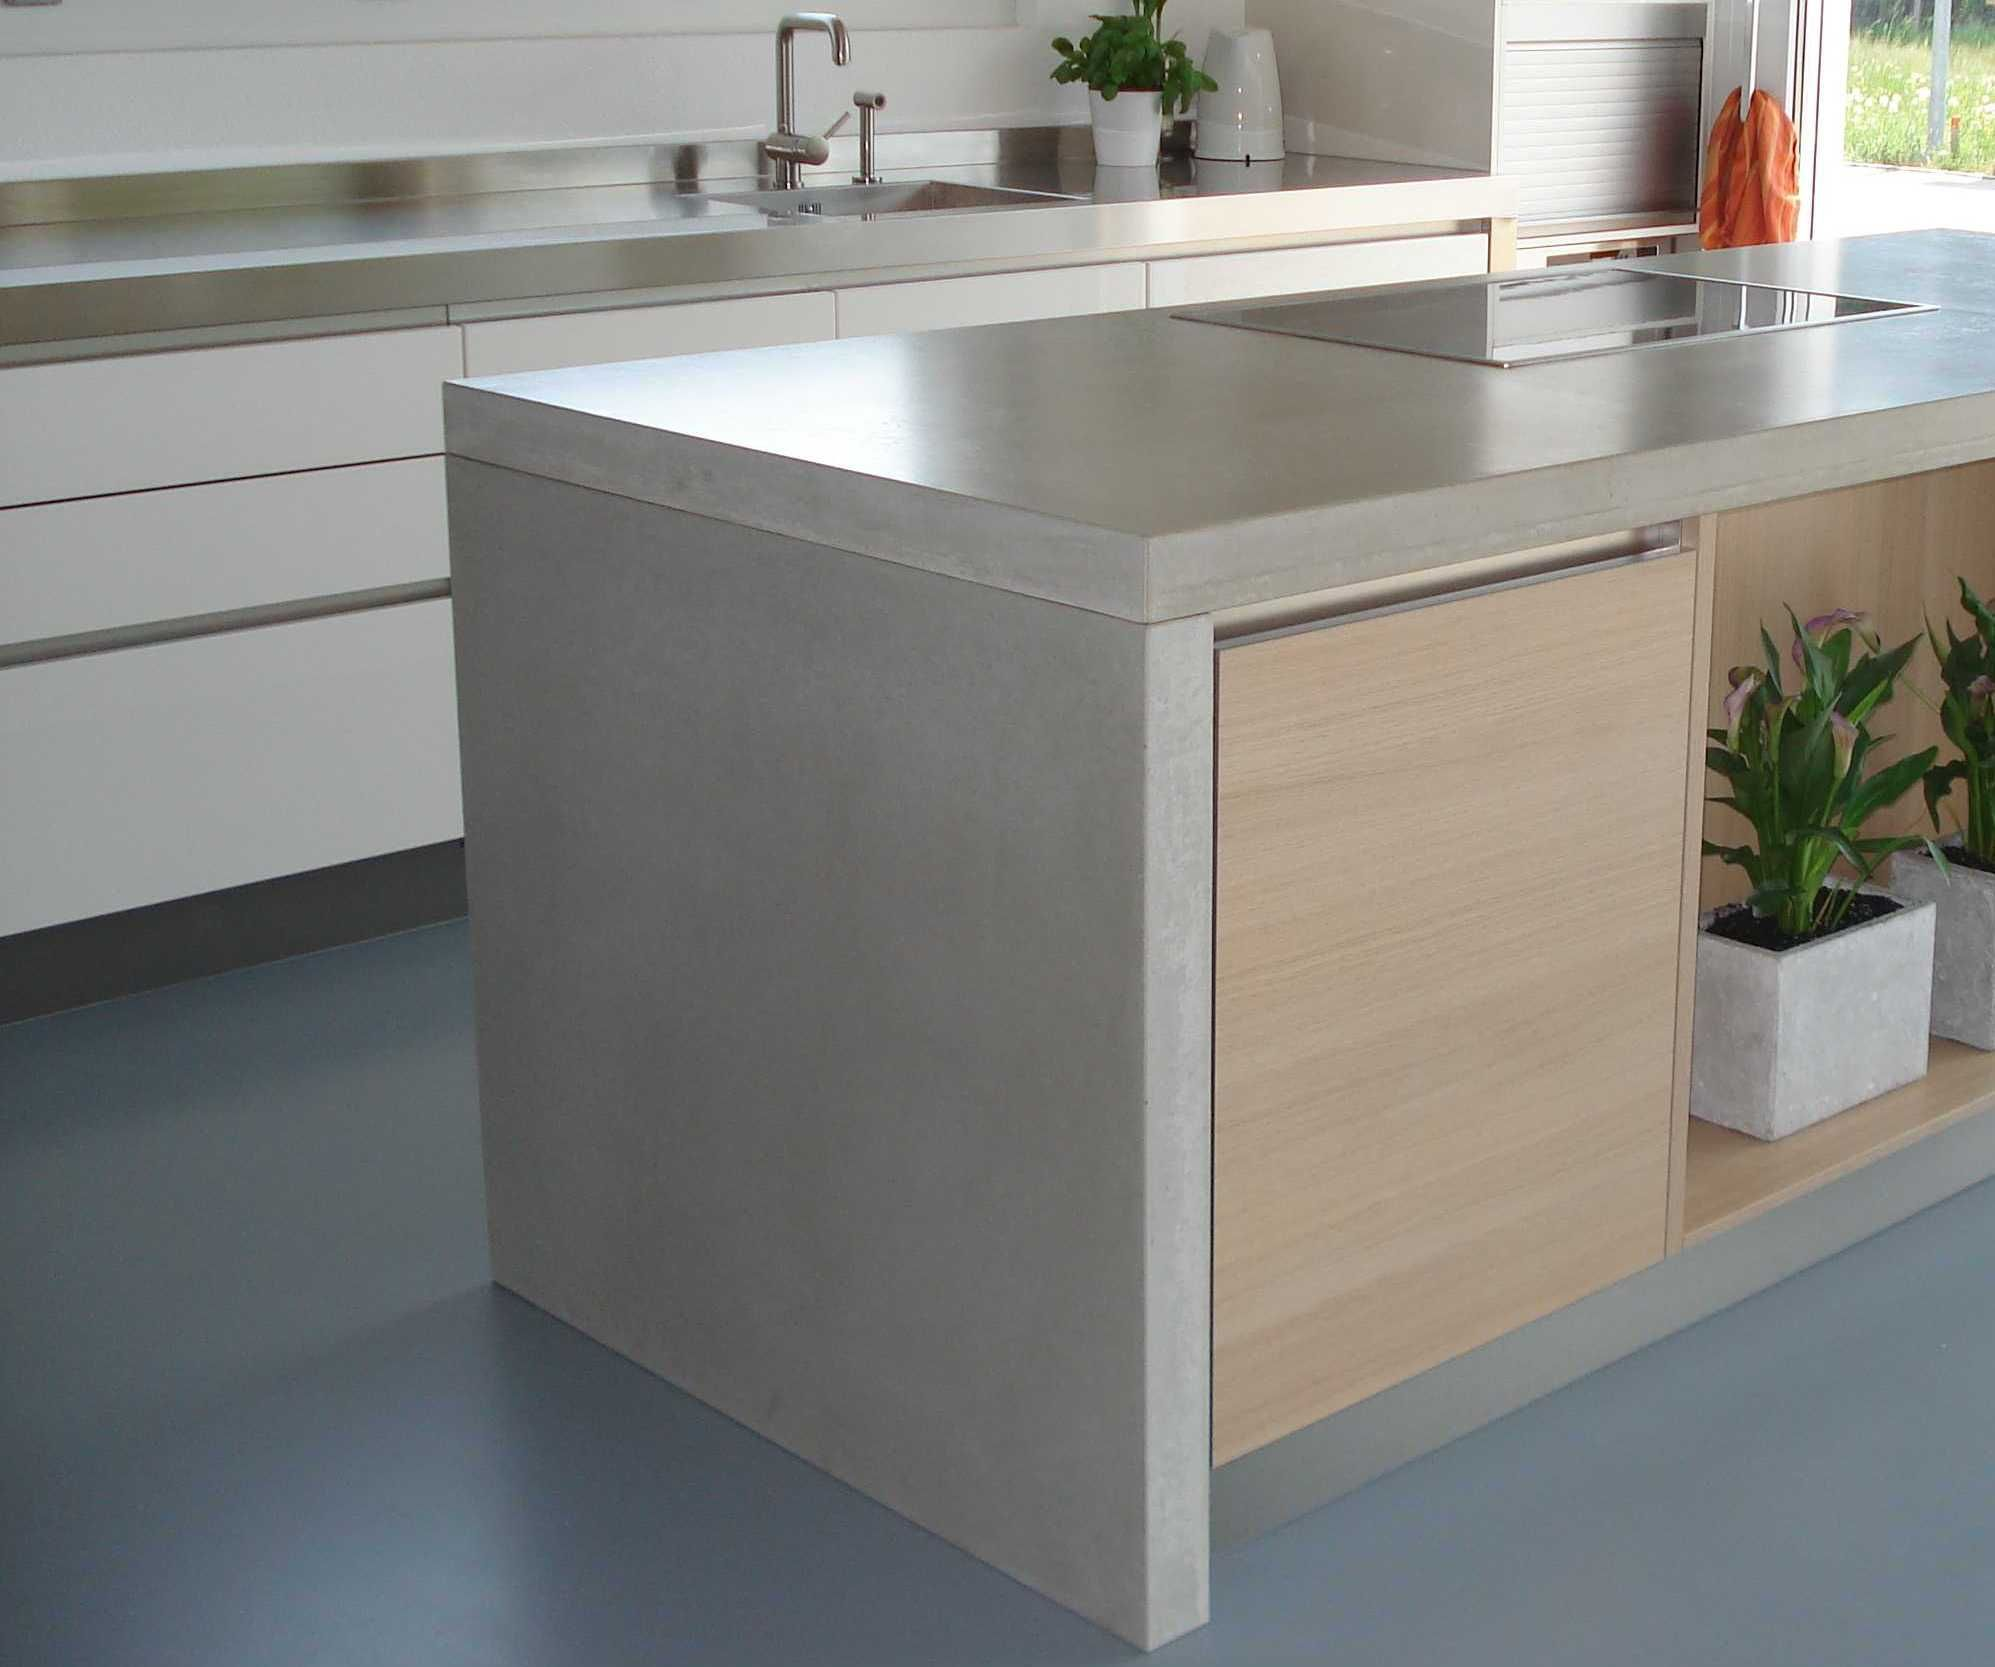 Granite Kitchen Bench Tops: White Cabinet With Chrome Long Handles And Stainless Steel